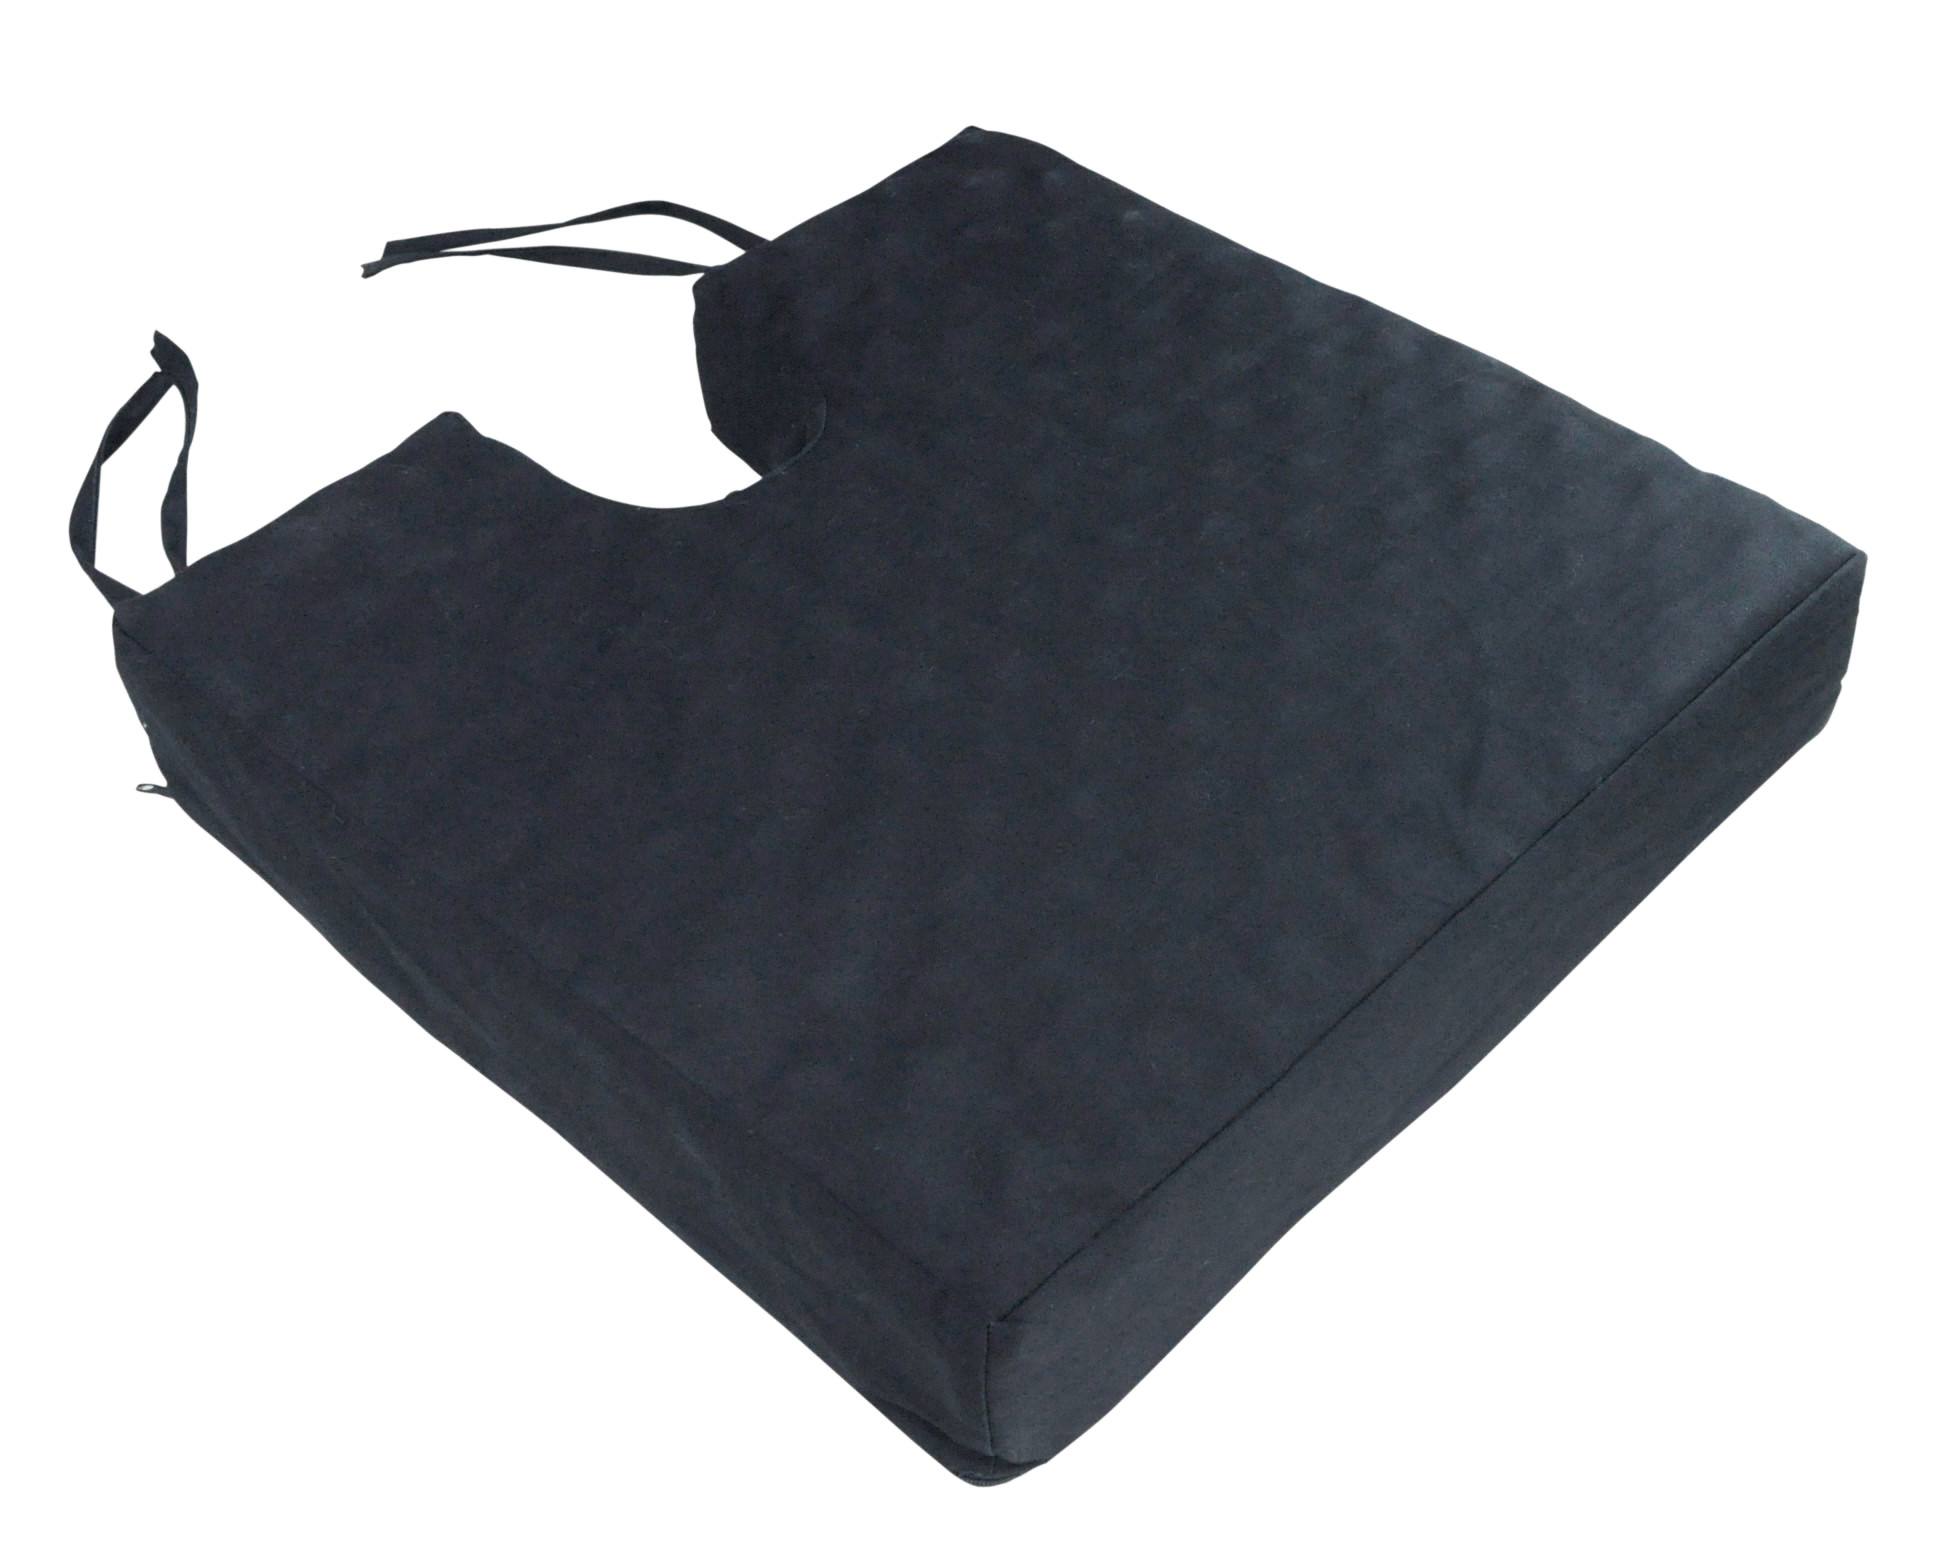 Pressure Relief Coccyx Cushion